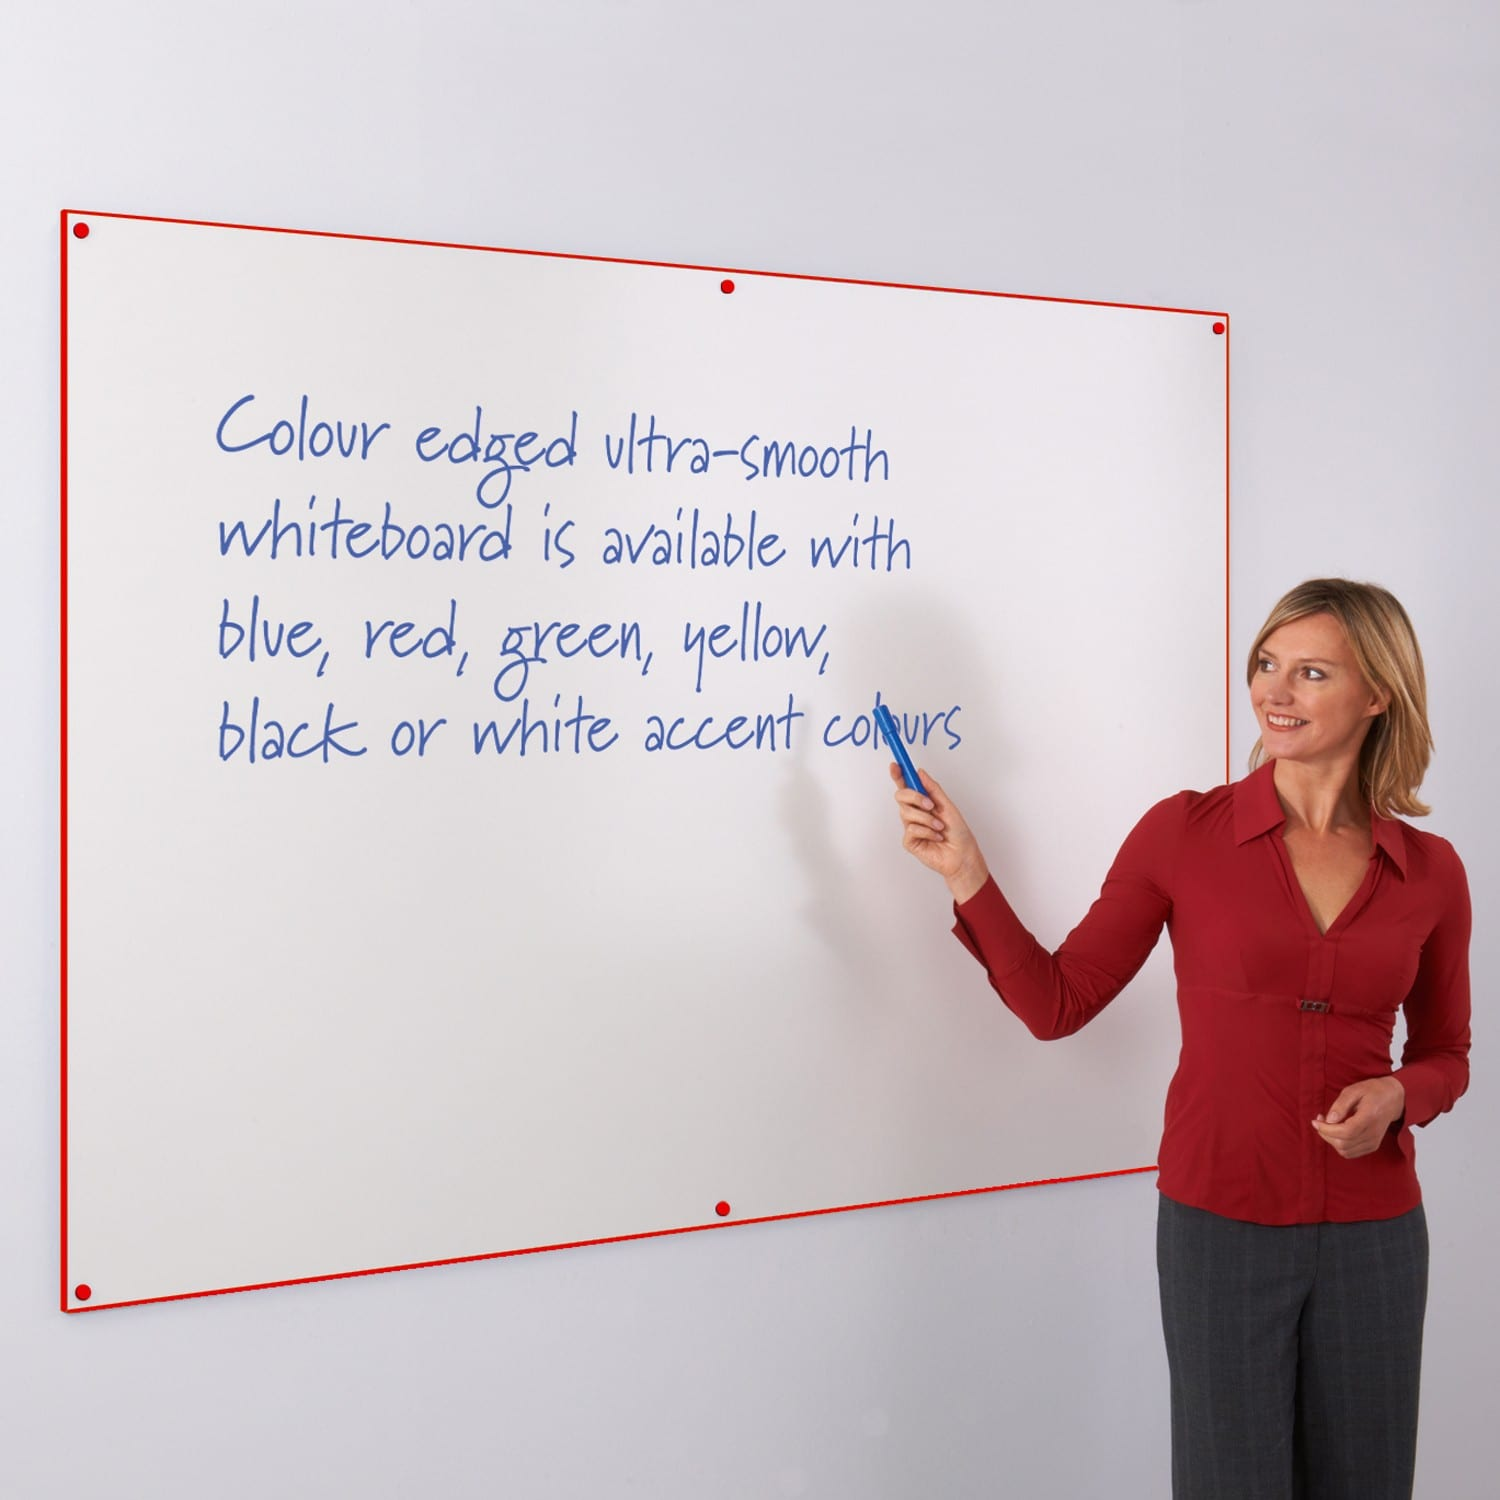 colour edge whiteboard